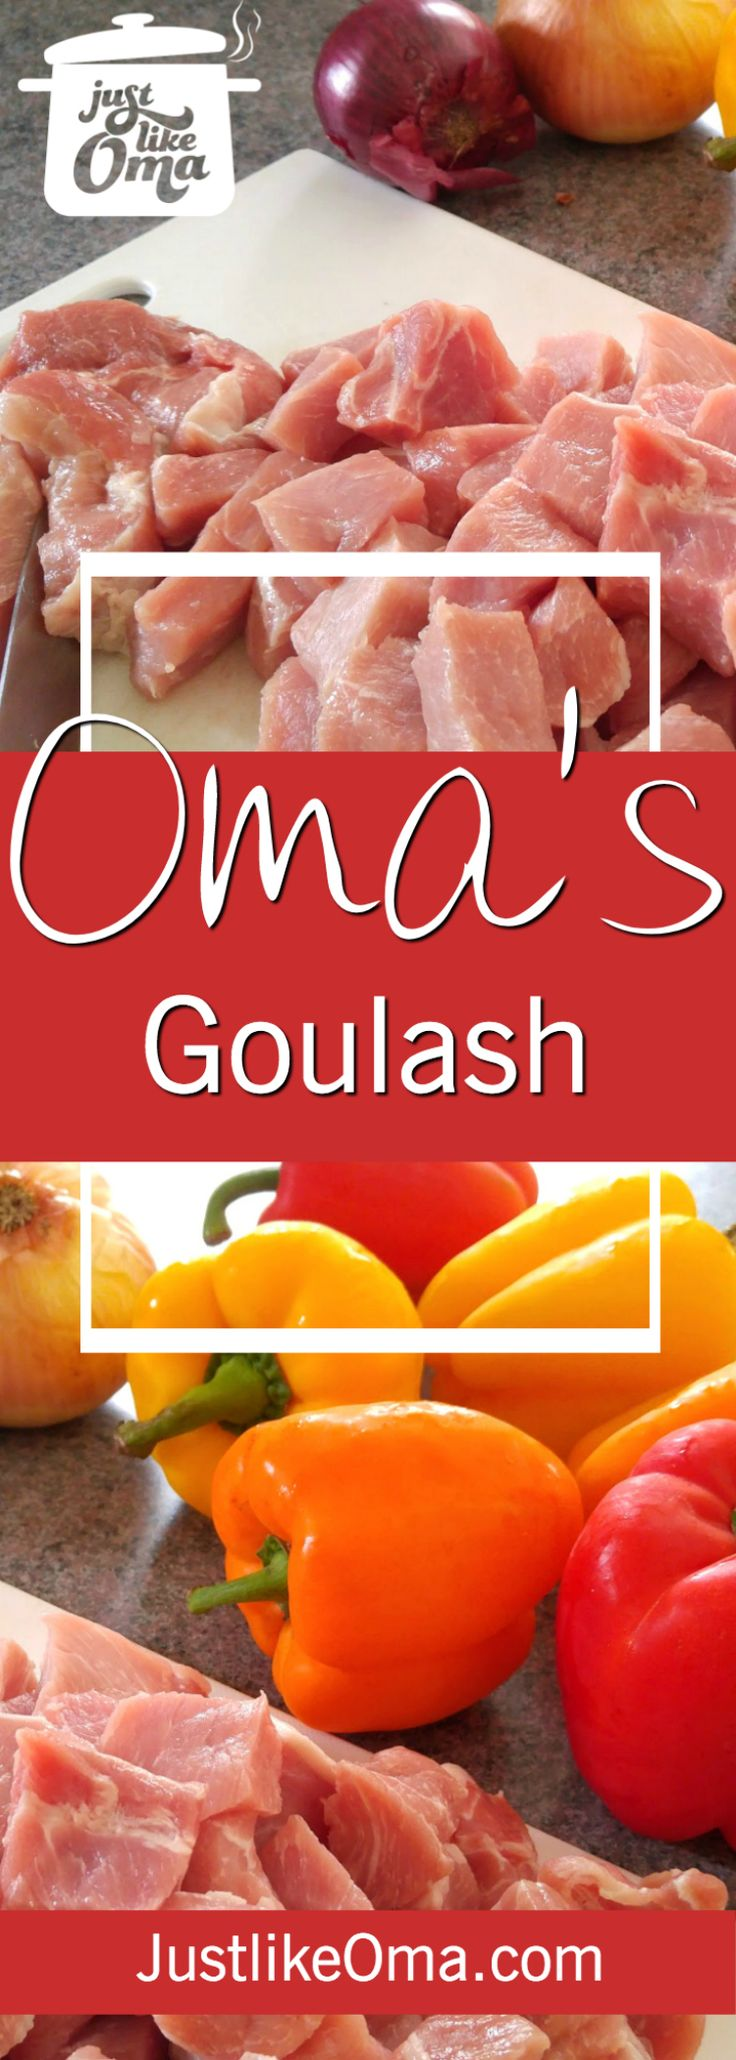 Making goulash soup after finding boneless pork chops and peppers on sale. Here's how: http://www.quick-german-recipes.com/goulash-soup.html ~ Oma Gerhild ❤️ ➤ I usually use beef, but when something's on sale, this Oma just needs to buy it!